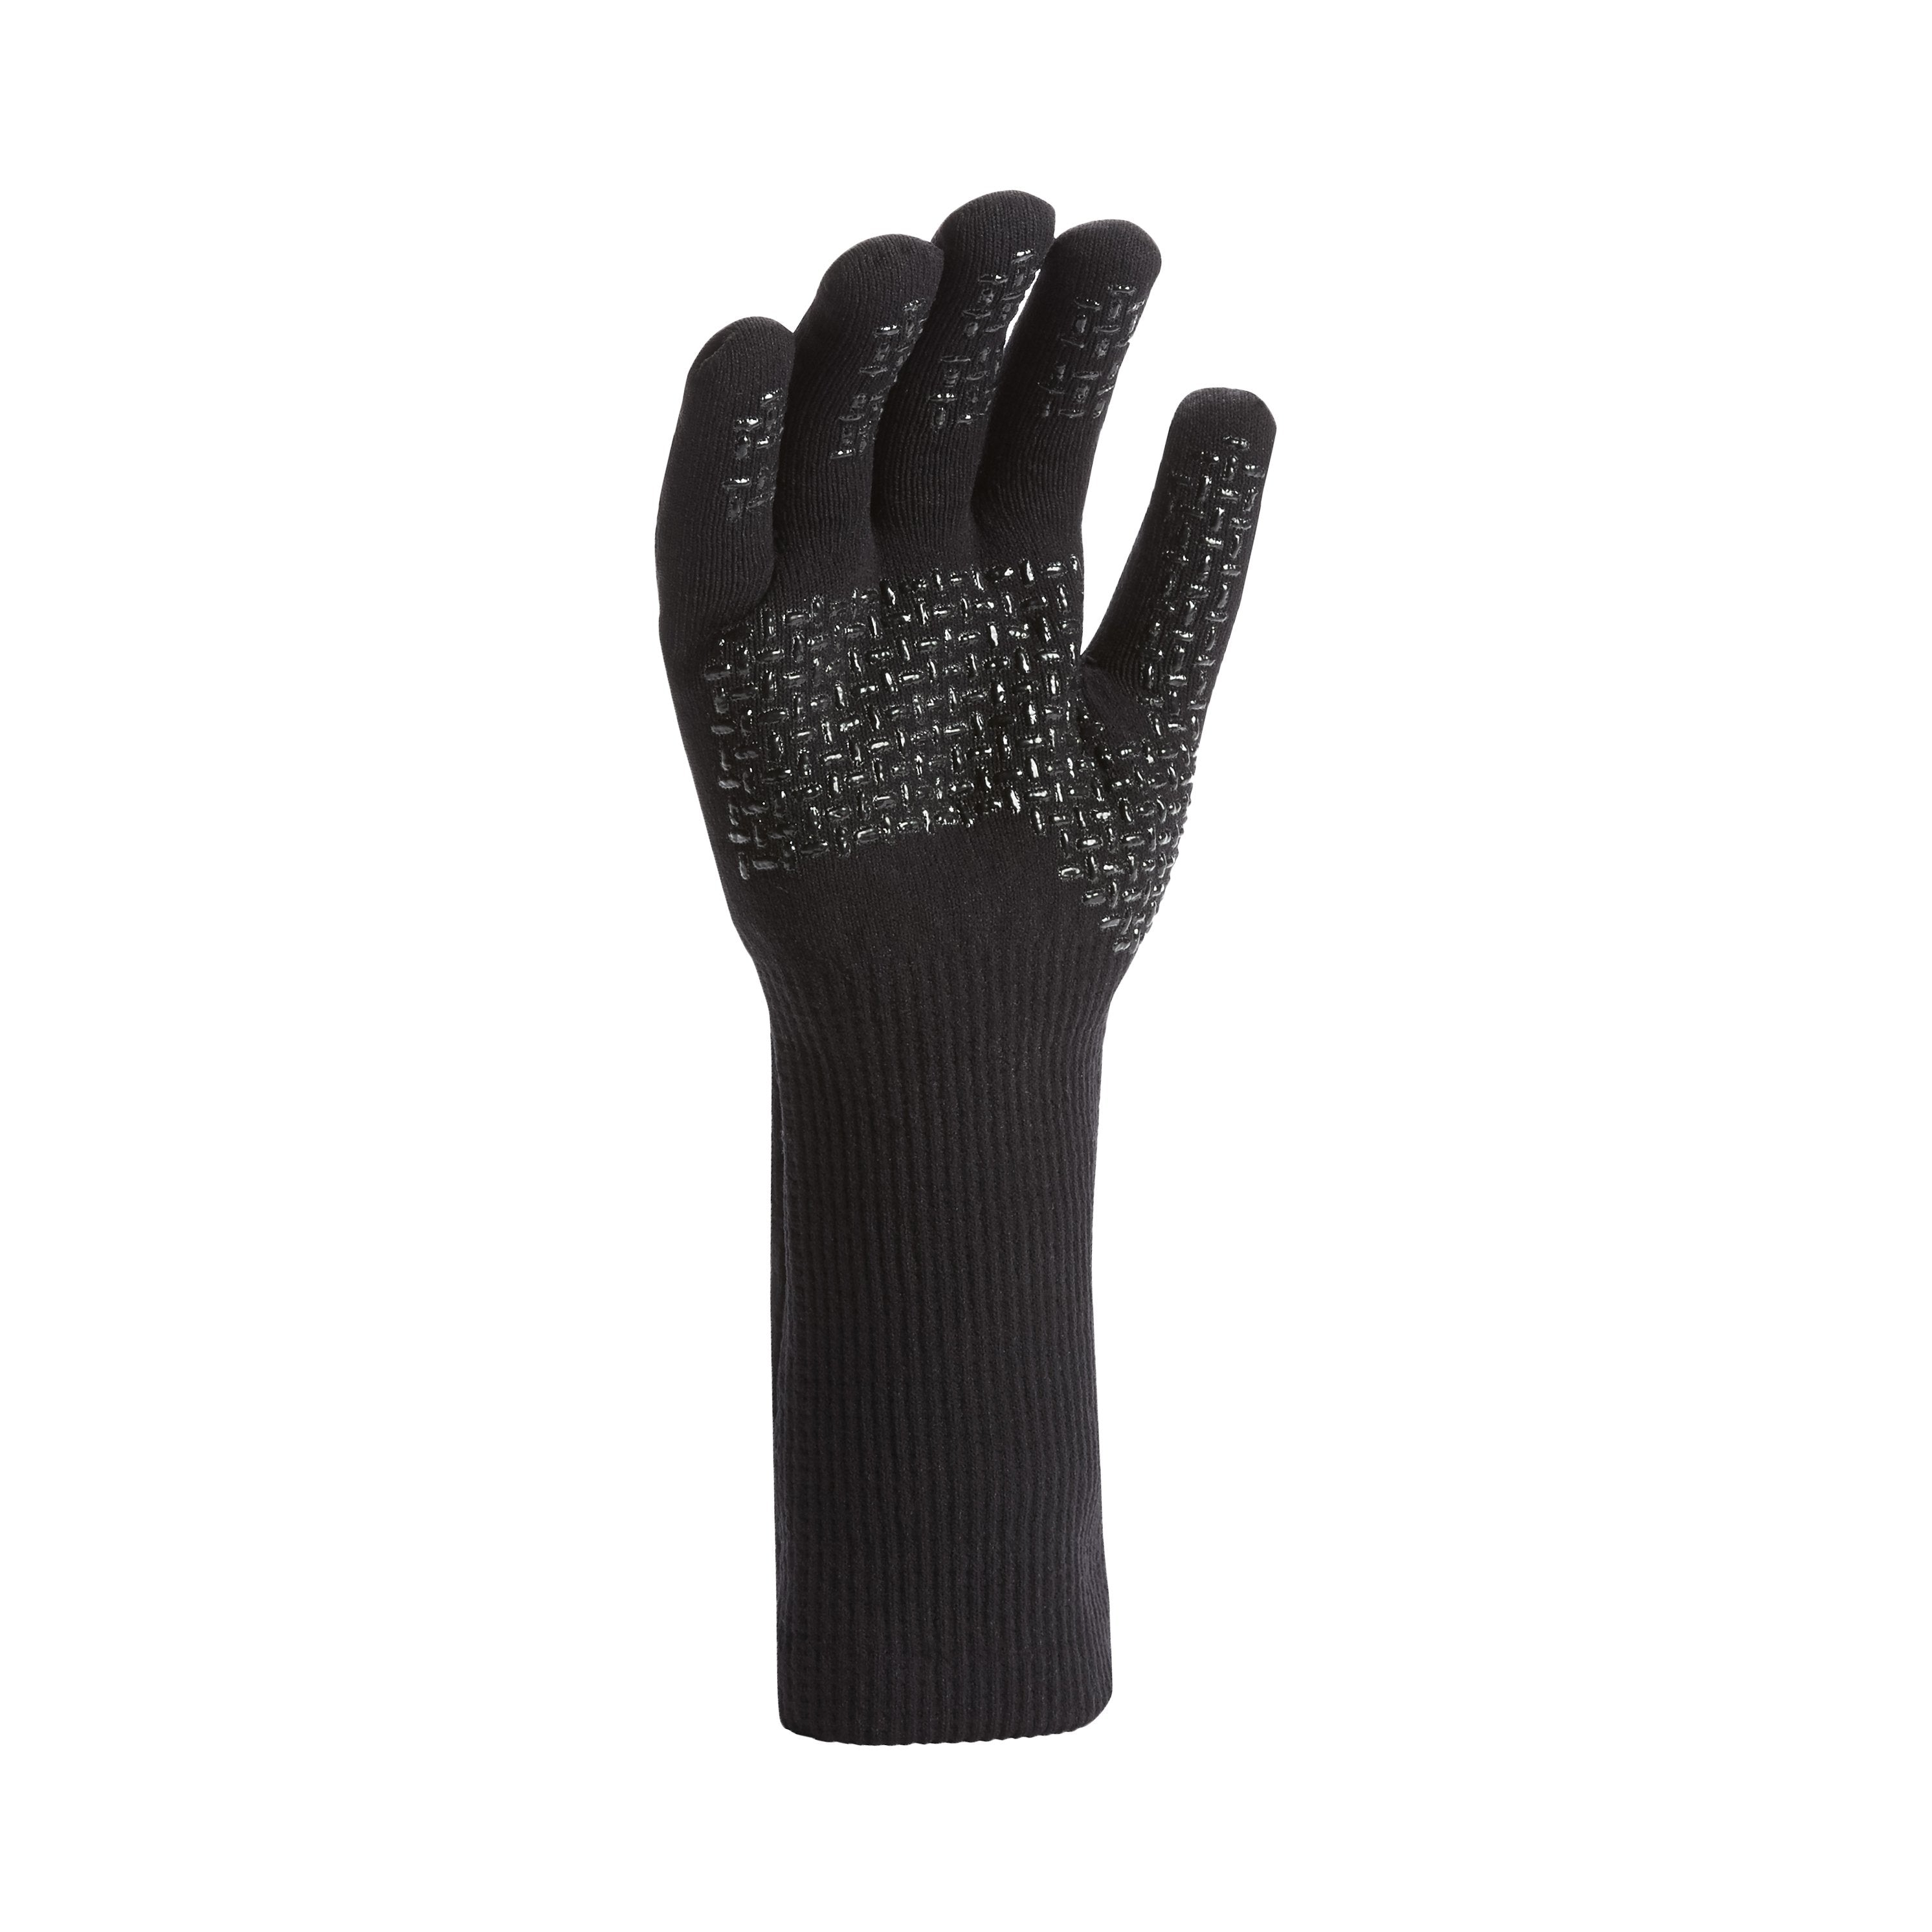 Waterproof All Weather Ultra Grip Knitted Gauntlet